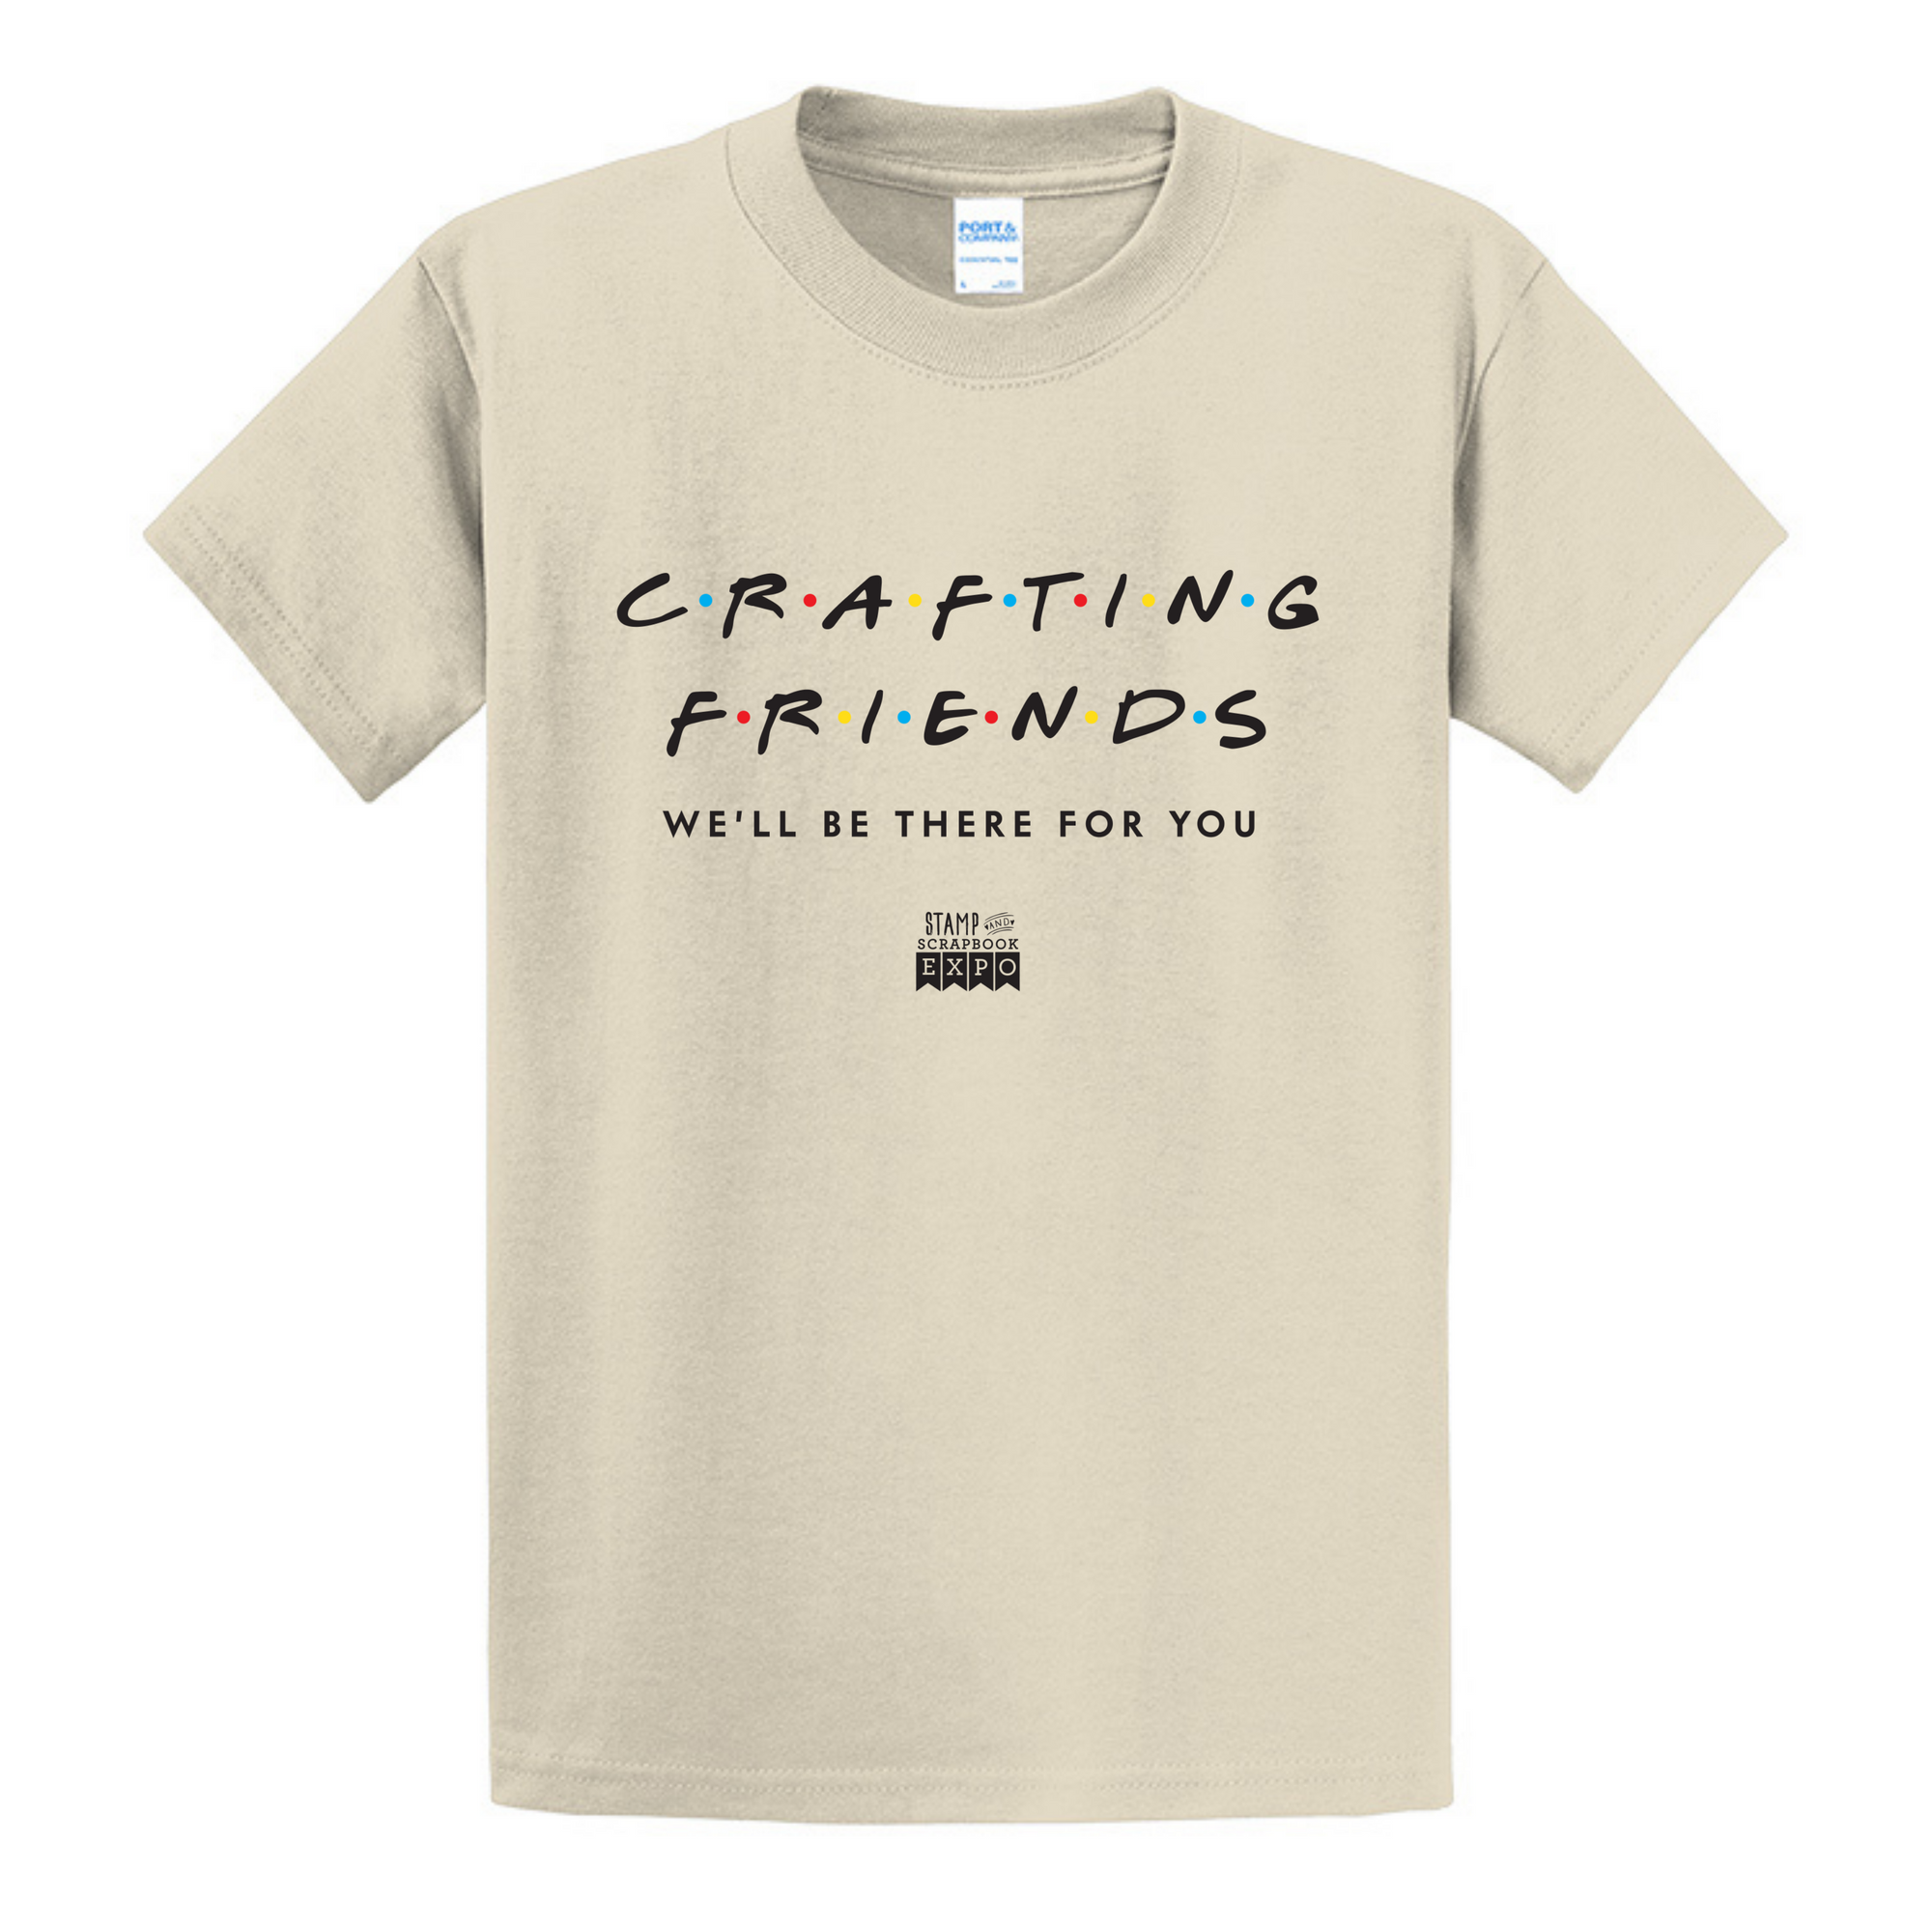 Natural - Crew Neck Unisex T-Shirt - Crafting Friends